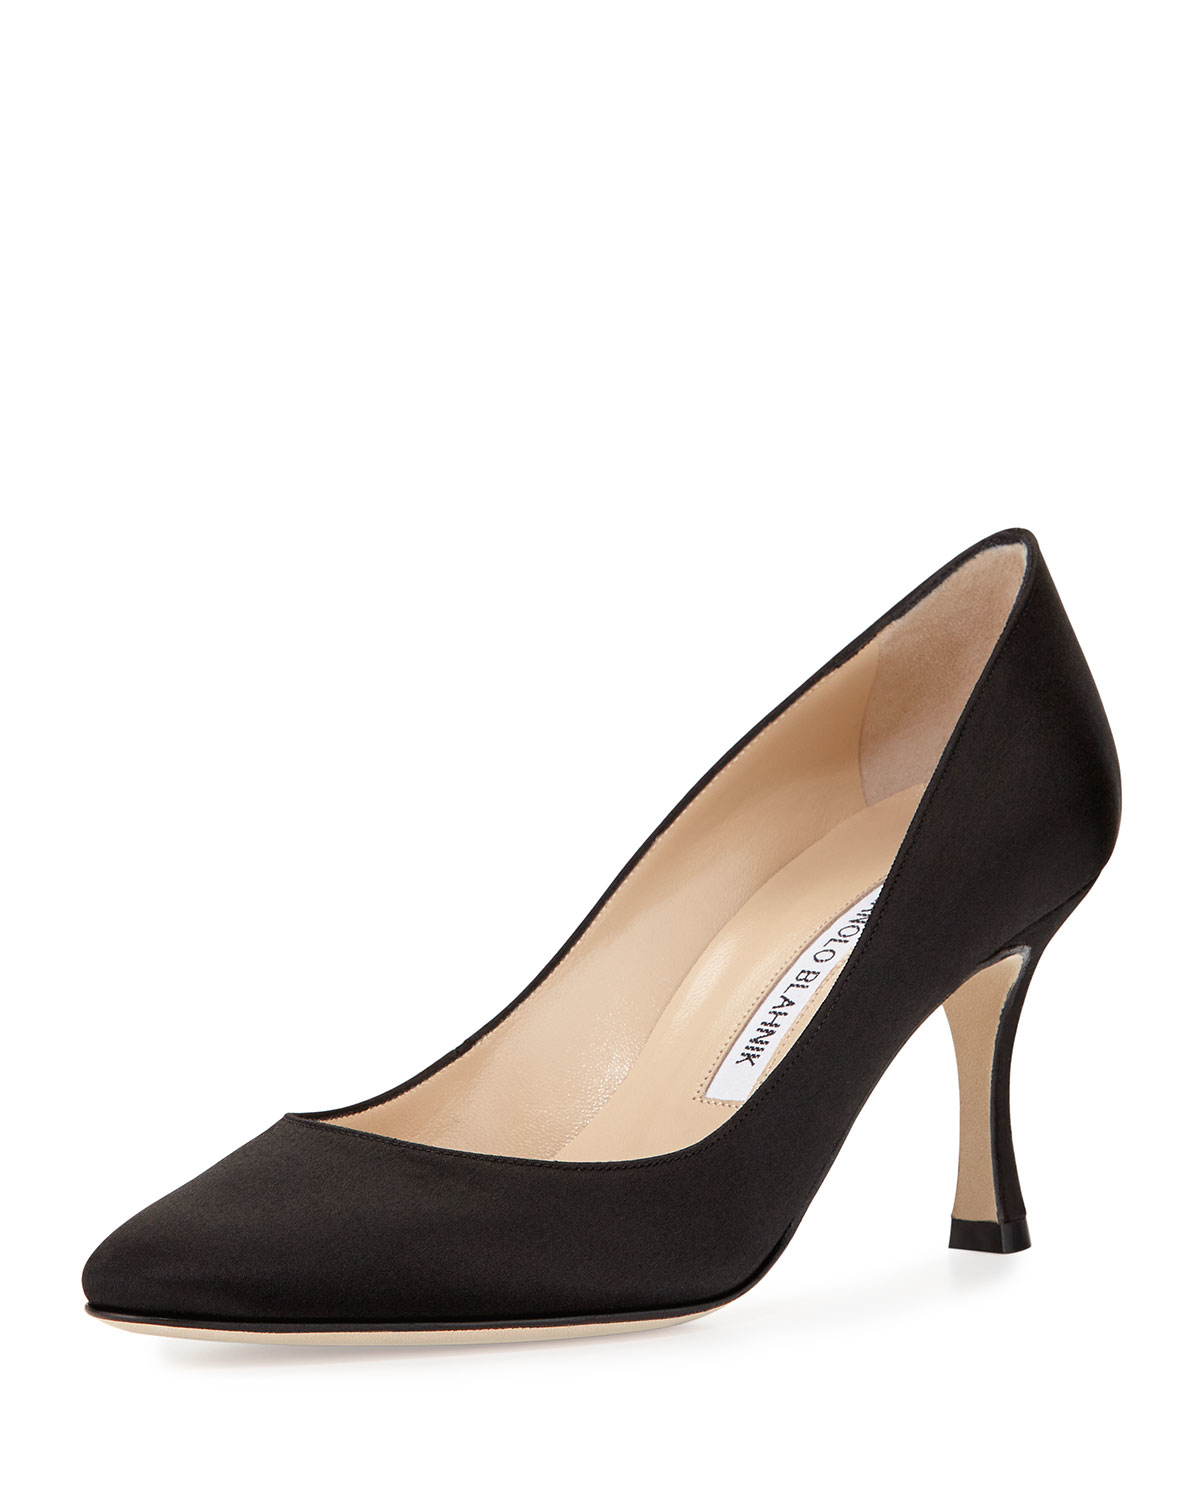 Find great deals on eBay for black satin pumps. Shop with confidence.